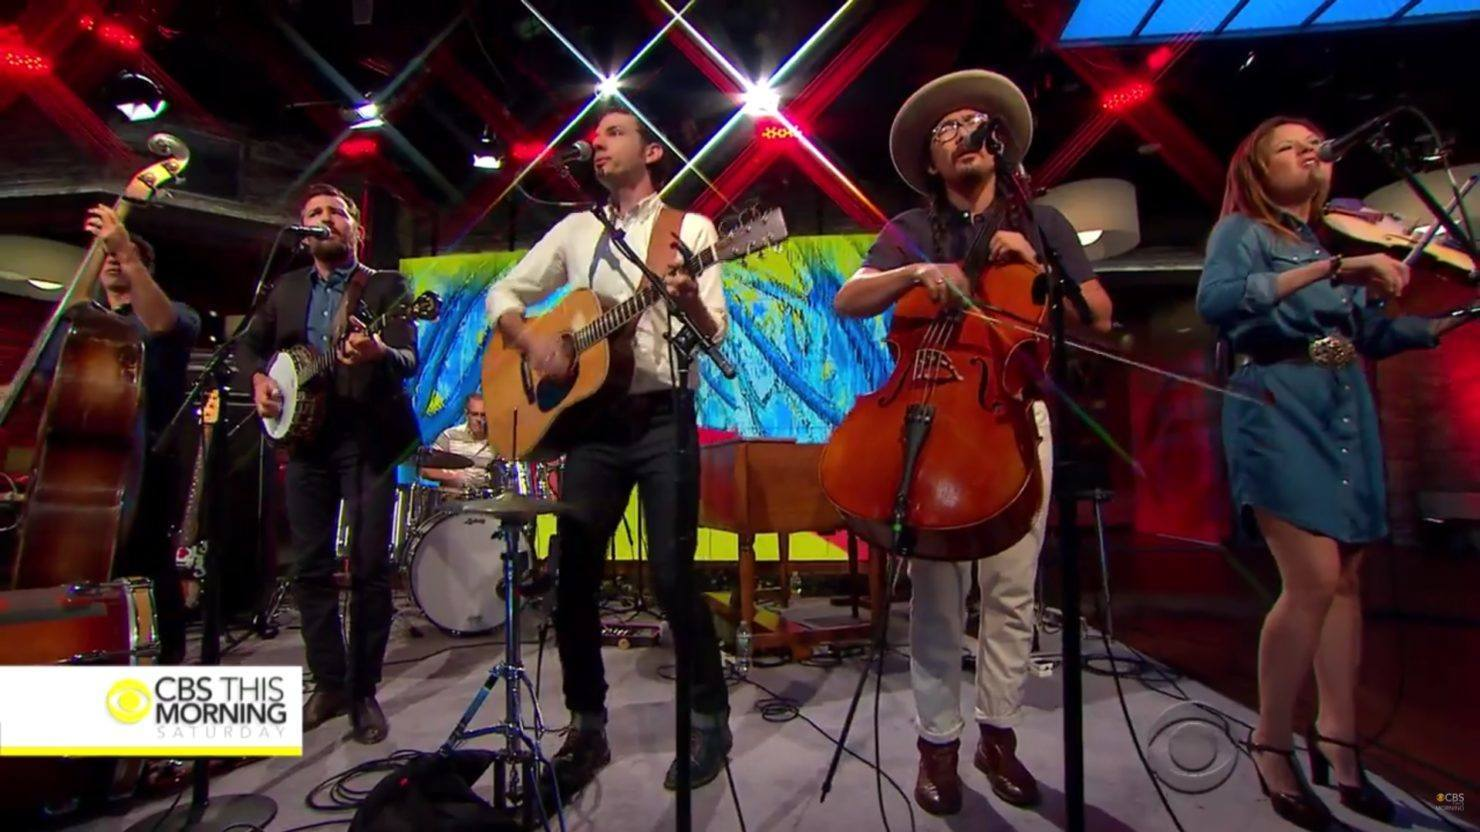 List of songs by The Avett Brothers | The Avett Brothers ...